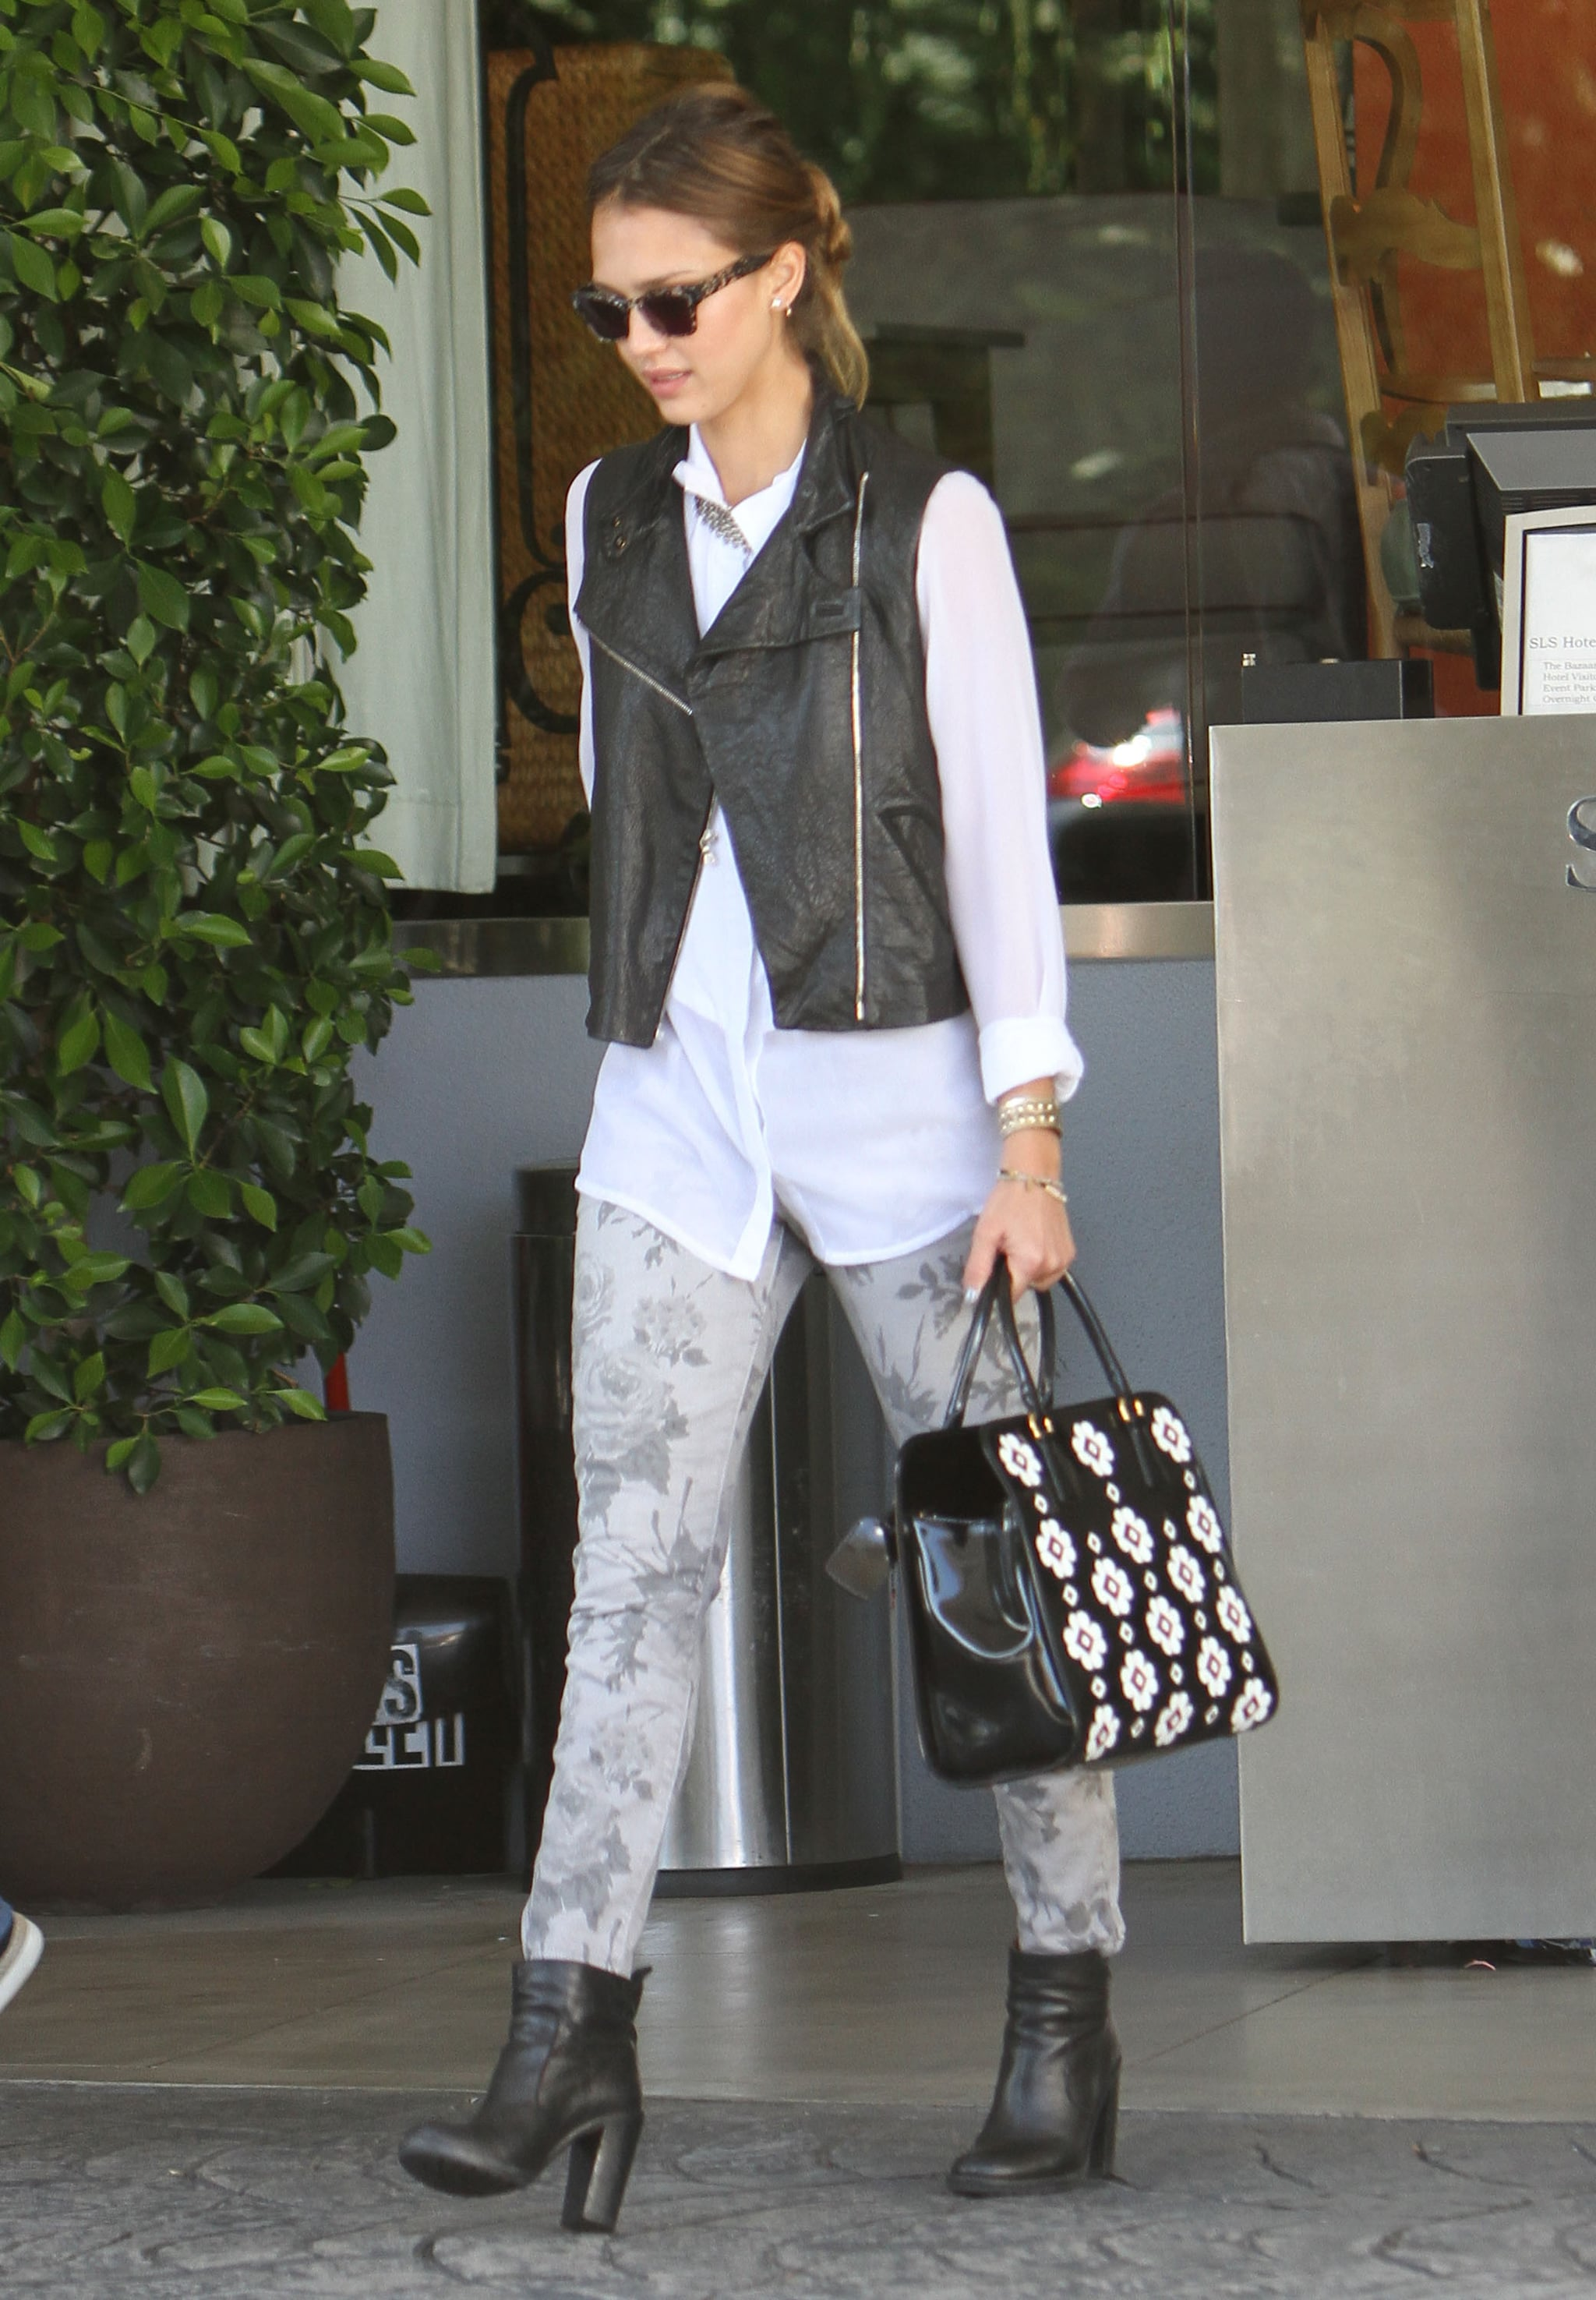 Jessica doubled up on florals, styling printed Current/Elliott jeans with an appliqué Prada tote and adding a biker-chic touch via a black leather Two by Vince Camuto vest and matching ankle boots at the SLS Hotel in West Hollywood.